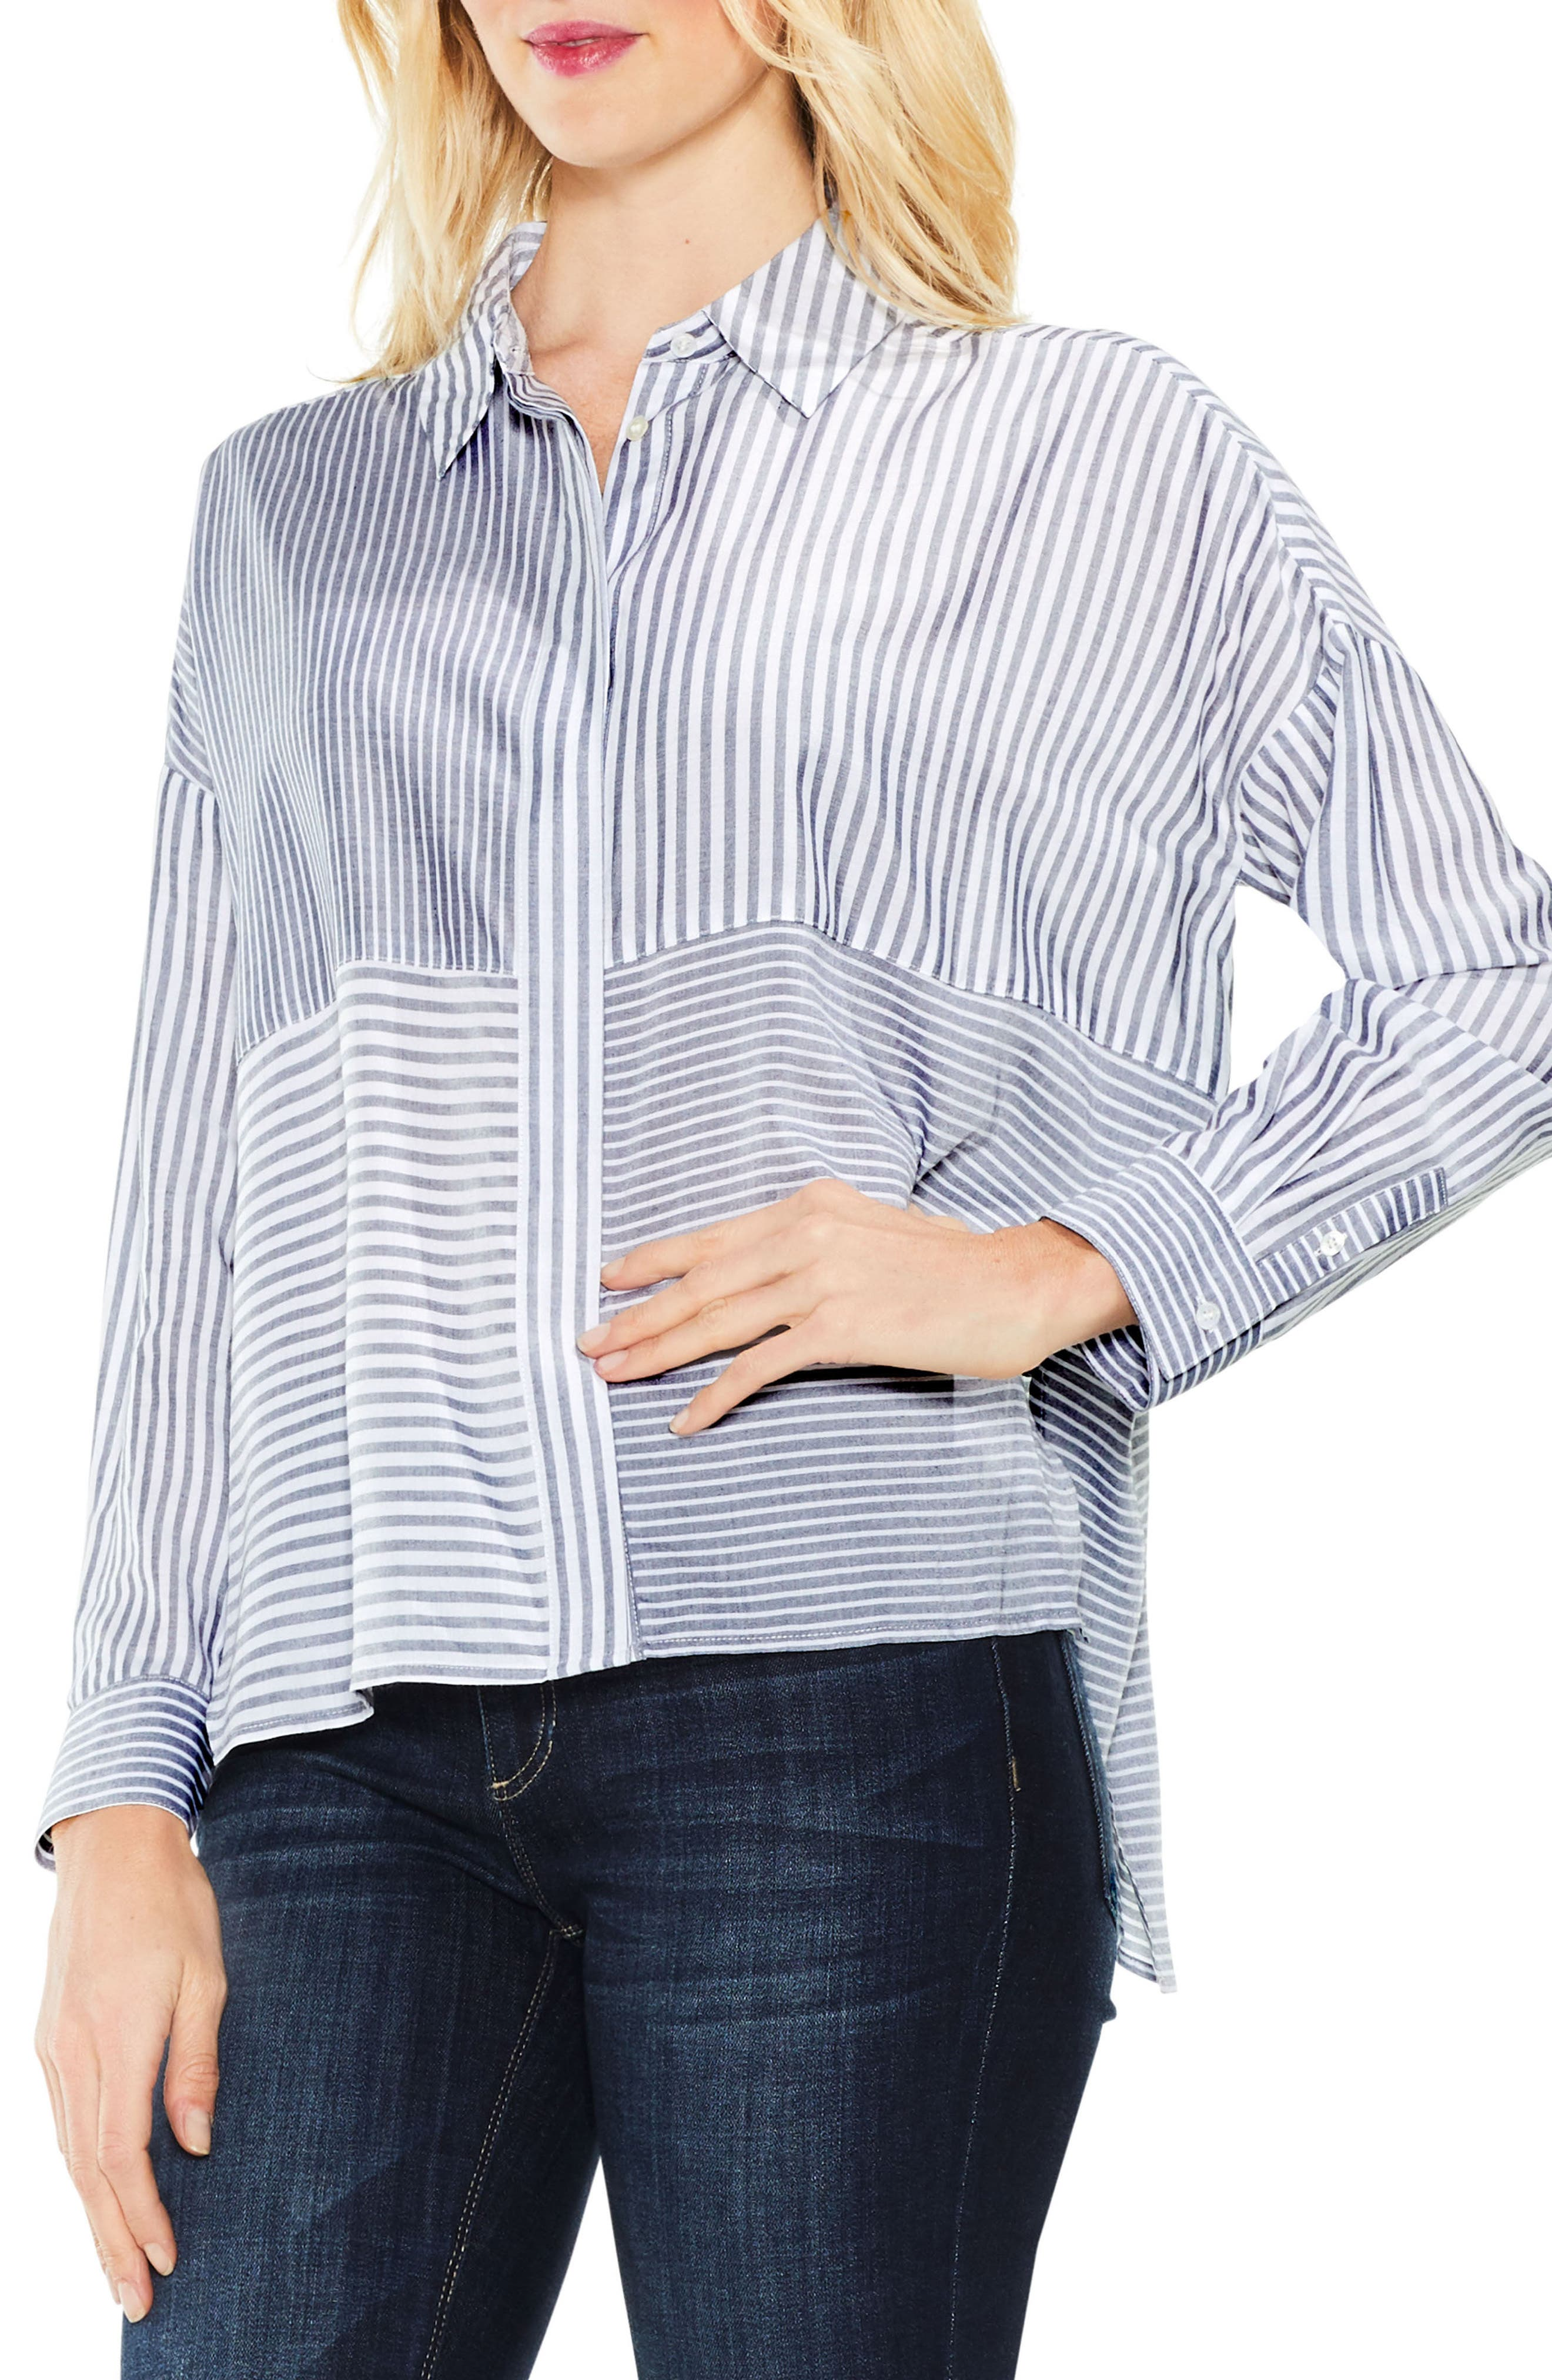 Two by Vince Camuto Mix Stripe Button Down Shirt,                             Main thumbnail 1, color,                             430